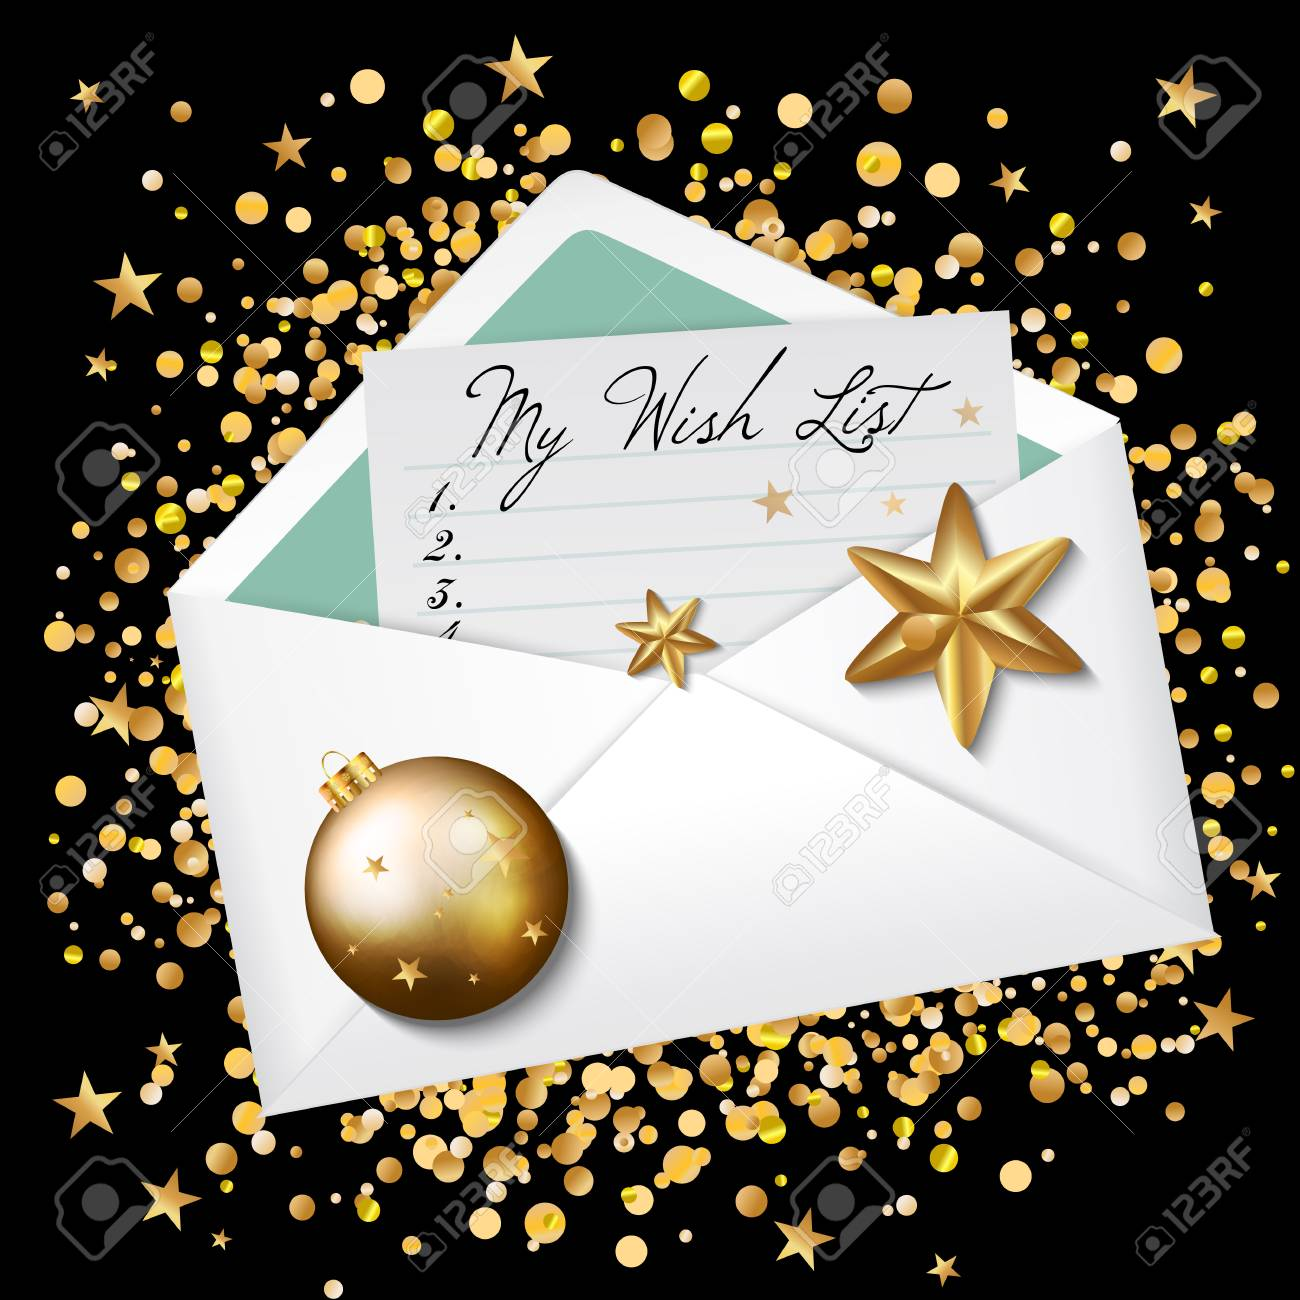 open envelope with my wish list words wishes for new year 2017 christmas background